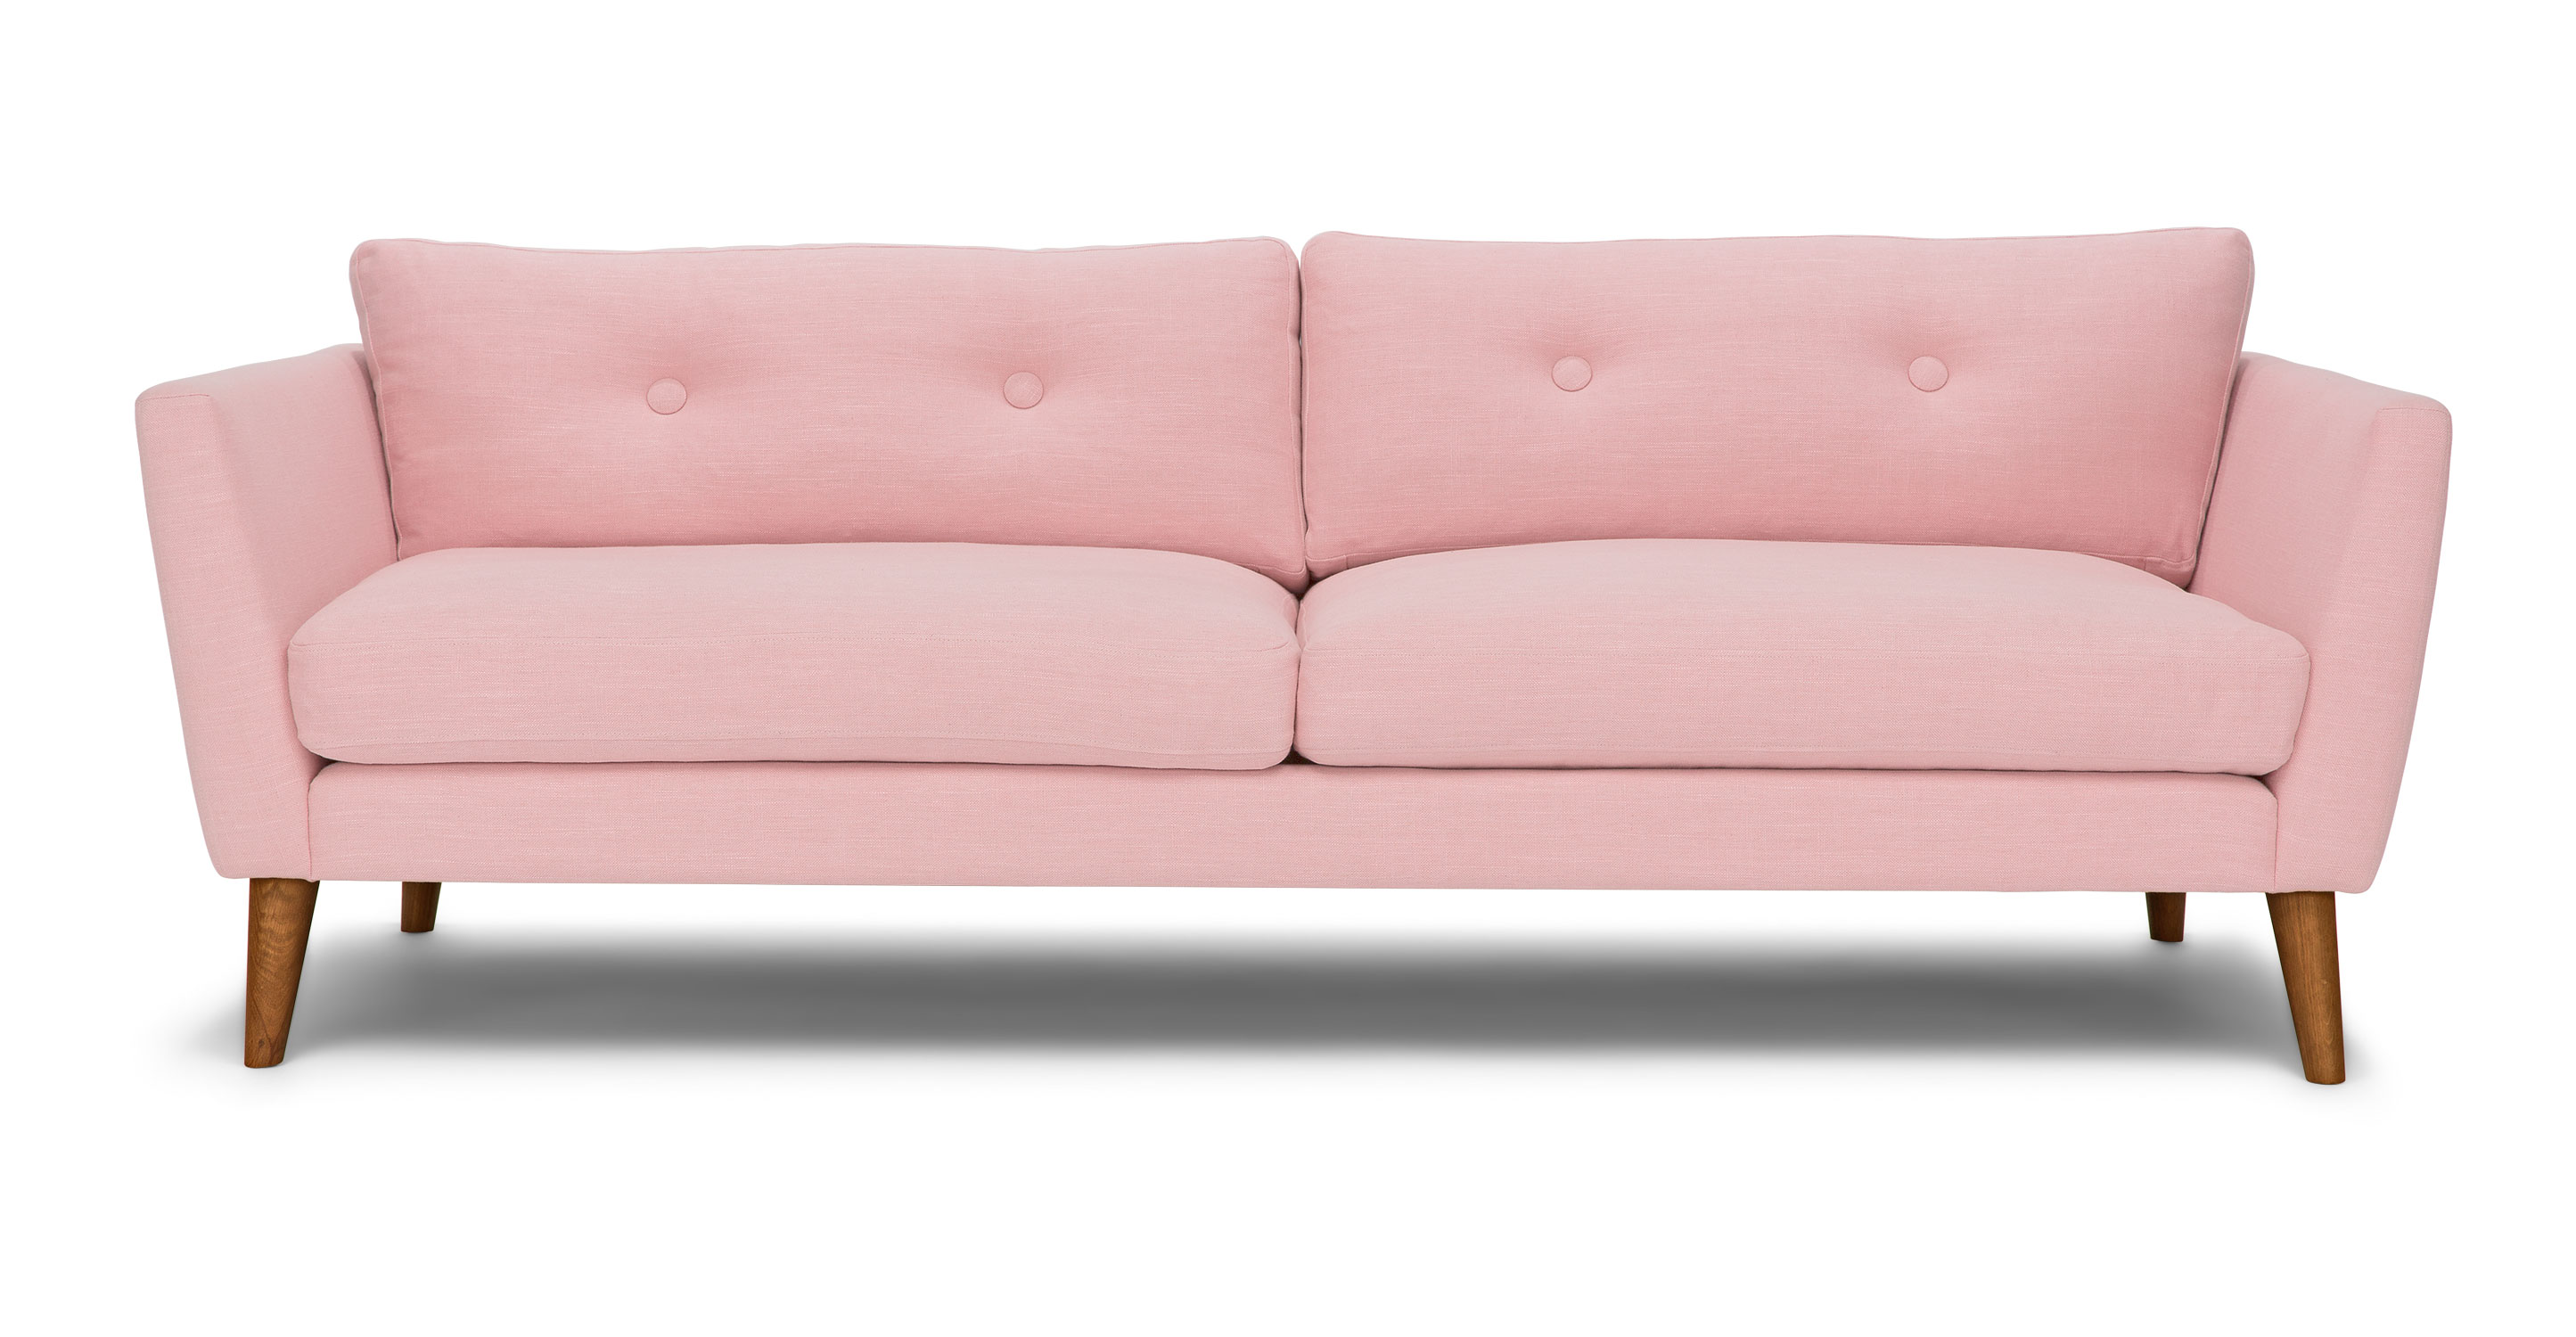 Emil quartz rose sofa sofas article modern mid for Couch und sofa